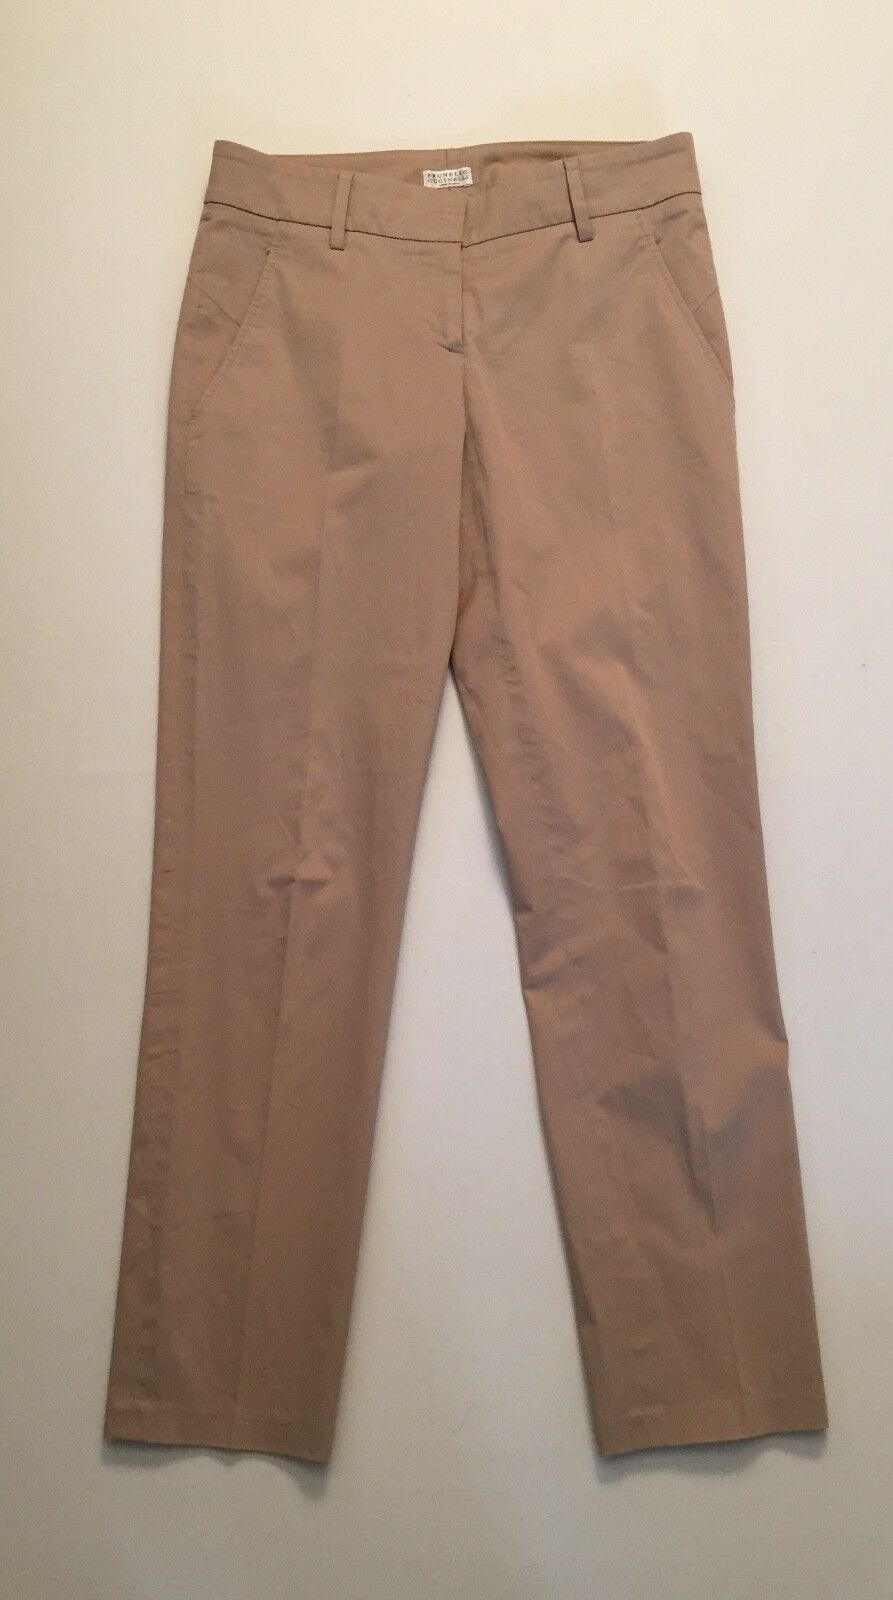 Brunello Cucinelli Gunex Cotton Slim Leg Tan Stretch Pants US Sz 4